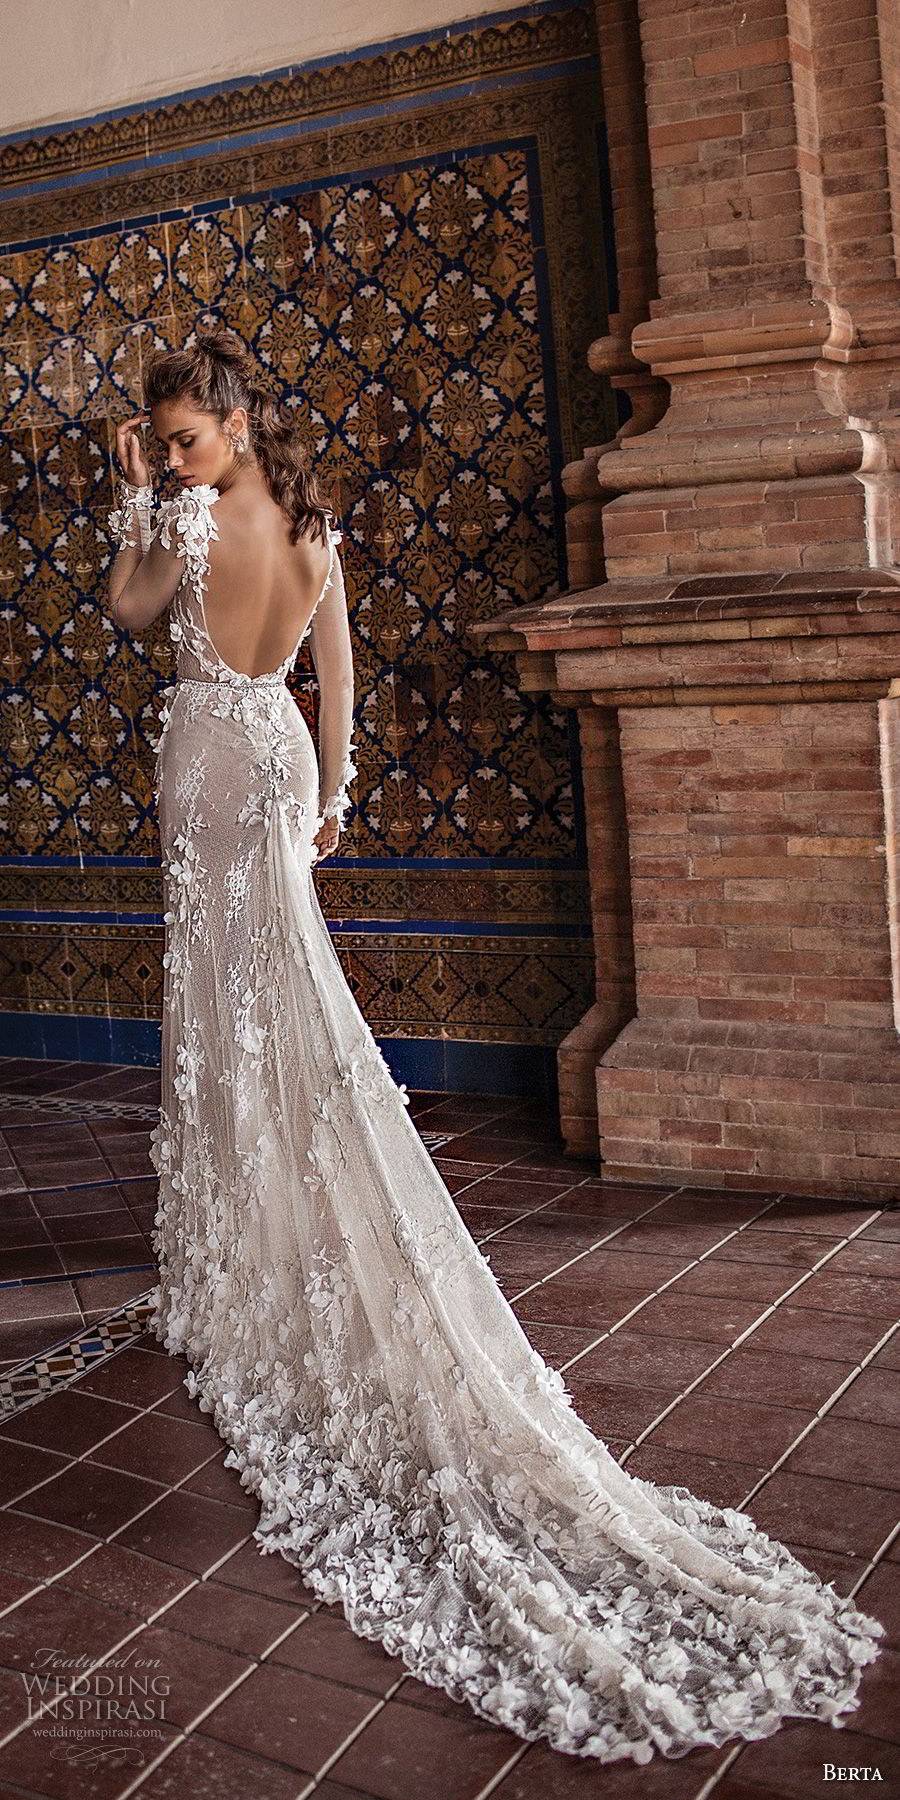 berta fall 2018 bridal long sleeves illusion bateau sweetheart neckline full embellishment elegant romantic fit and flare sheath wedding dress open scoop back chapel train (23) bv